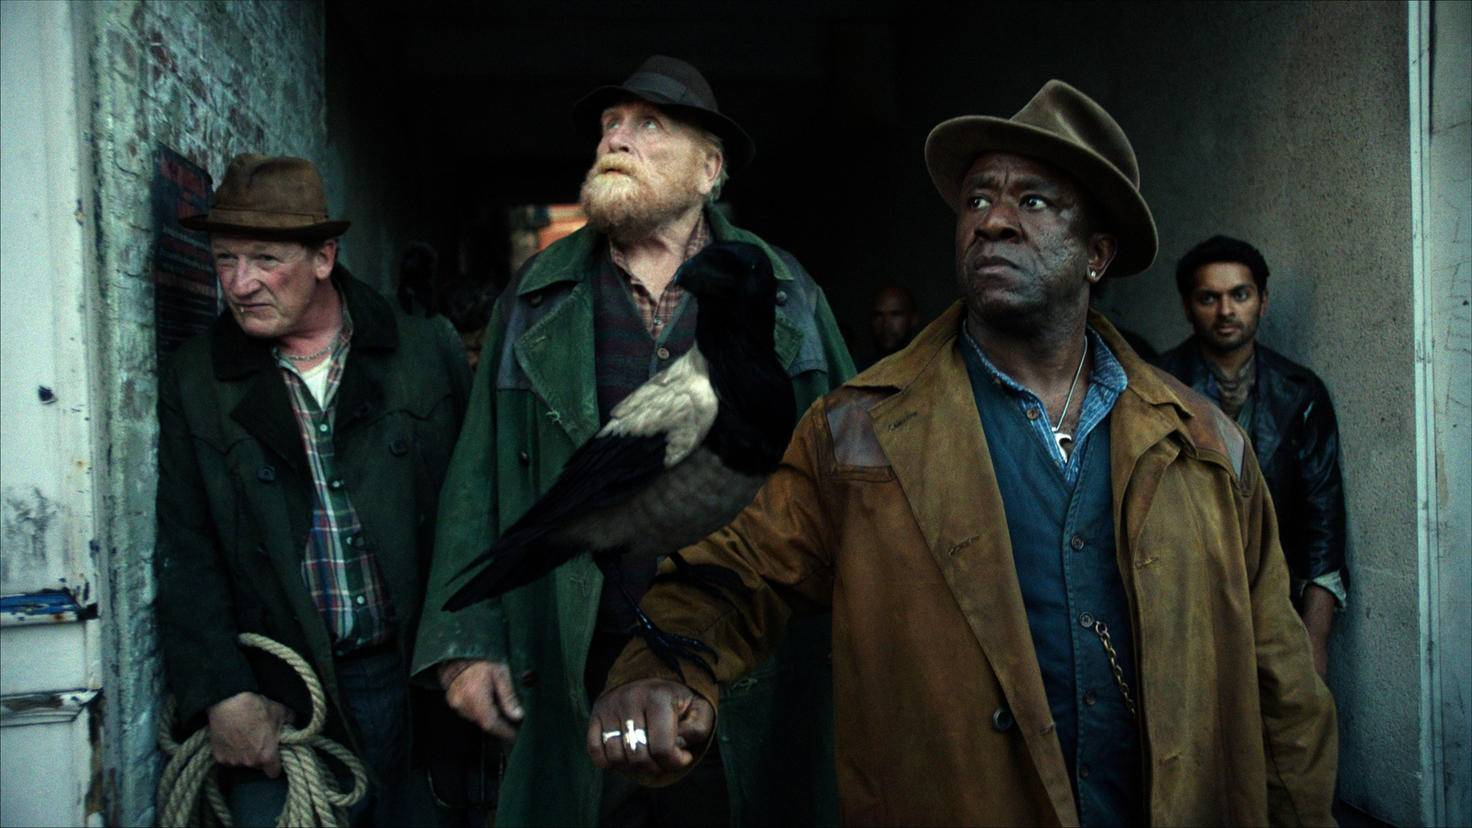 His Dark Materials James Cosmo und Lucian Msamati als Farder Coram und John Faa